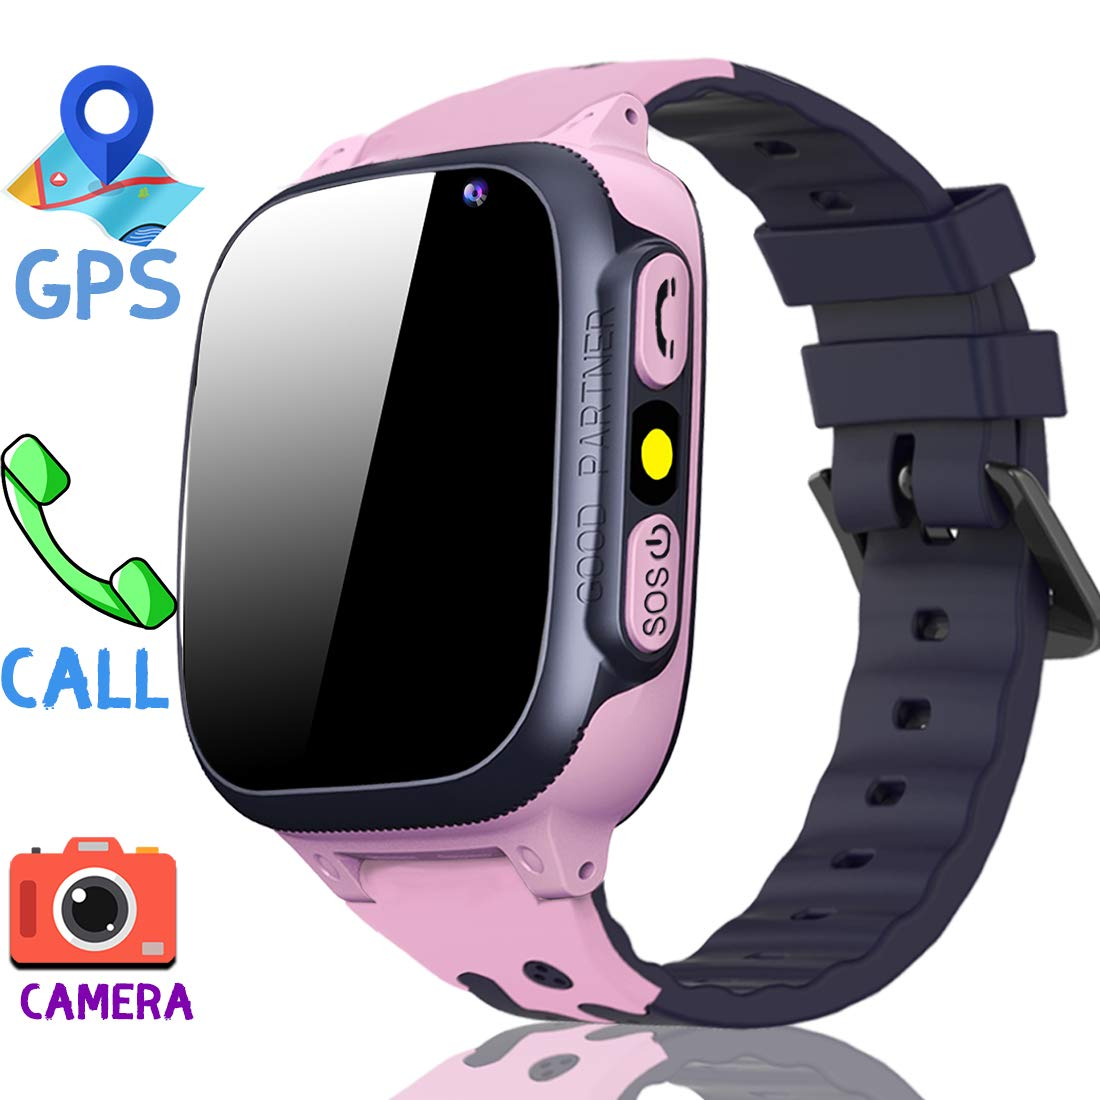 MiKin Children Smart Watches for Girls Boys Age 3-12 Kids Smartwatch Phone with GPS Tracker 2 Way Call SOS Remote Camera Touch Screen Alarm Clock Flashlight Voice Chat Gizmo Wrist Watch Android iOS by MiKin (Image #1)